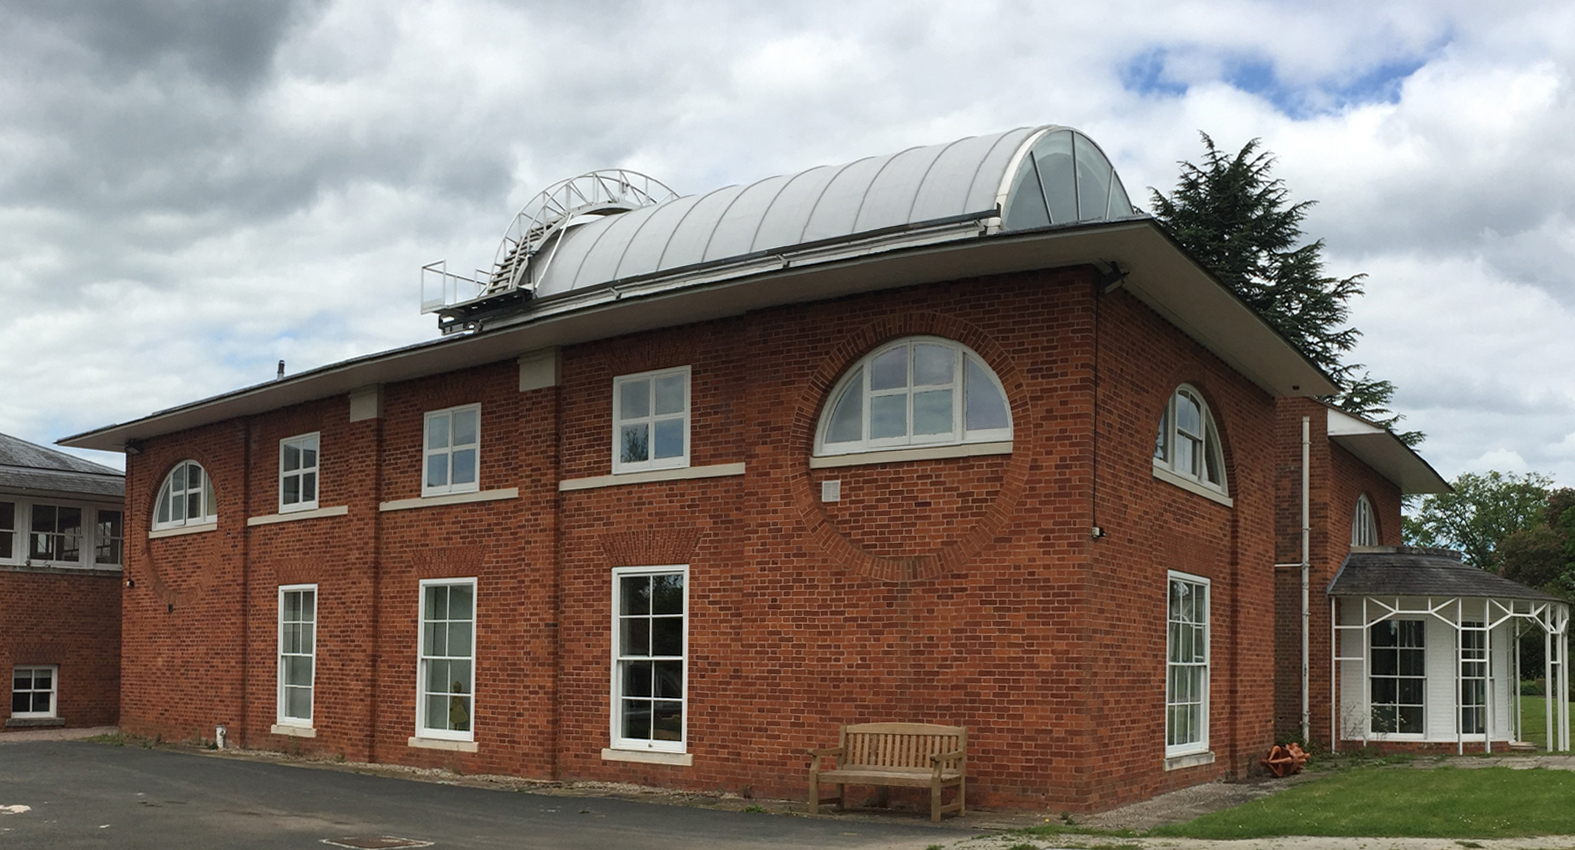 The project involved removing an existing barrel-shaped polycarbonate roof and replacing it with a new single ply roof that had both excellent performance and minimal environmental impact as well as look good both inside and out